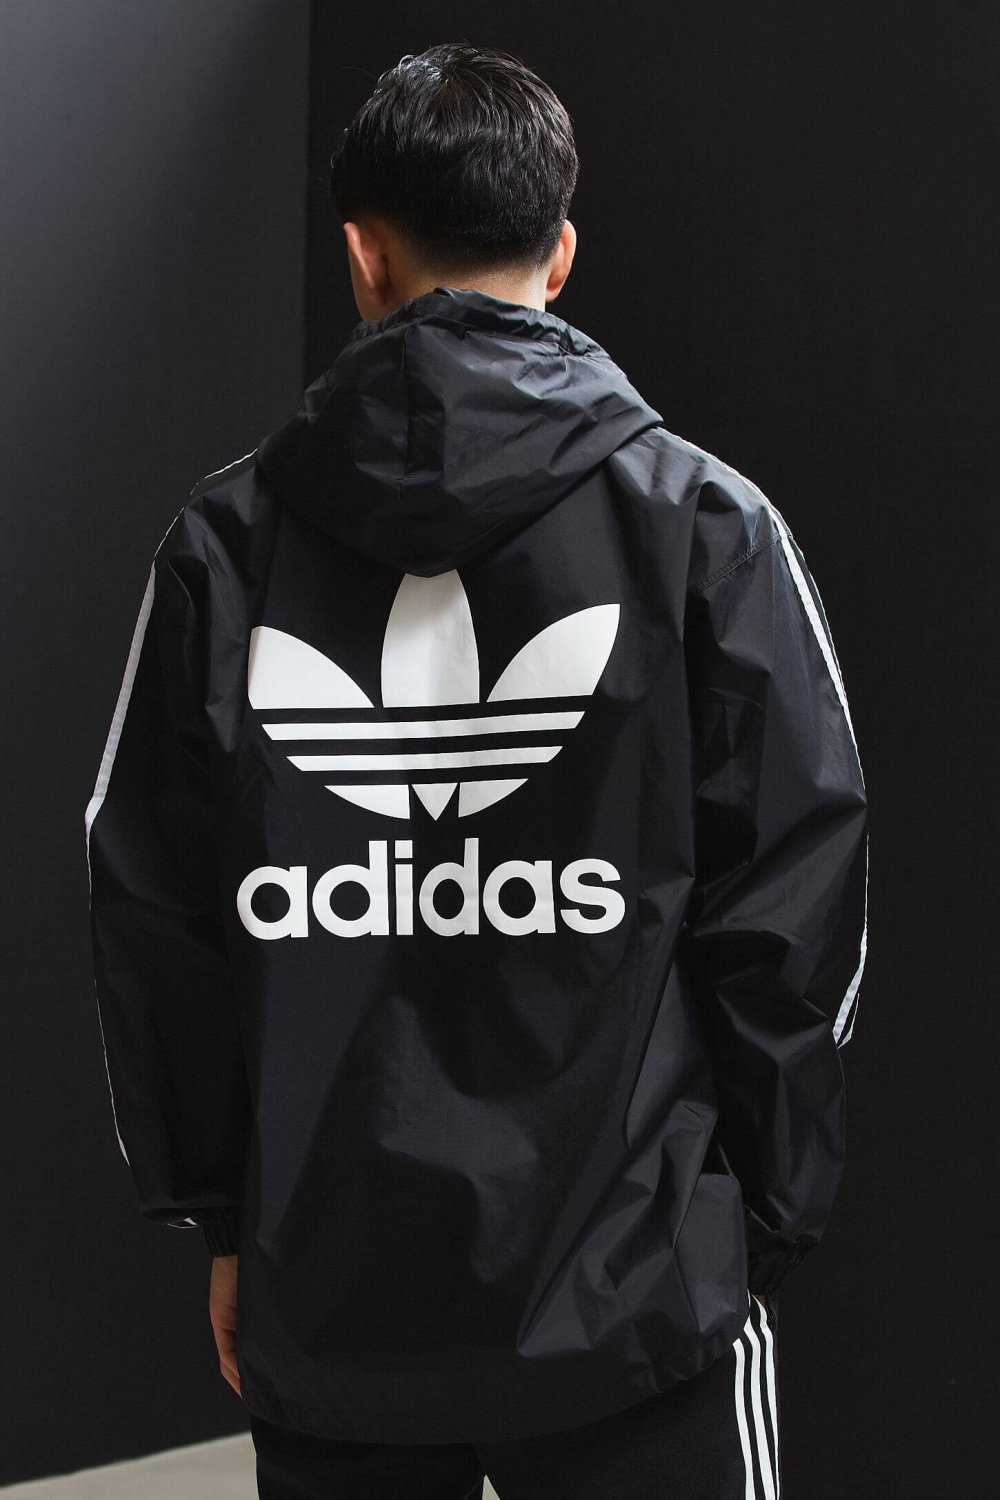 an in-depth review of the best adidas jackets of 2018.